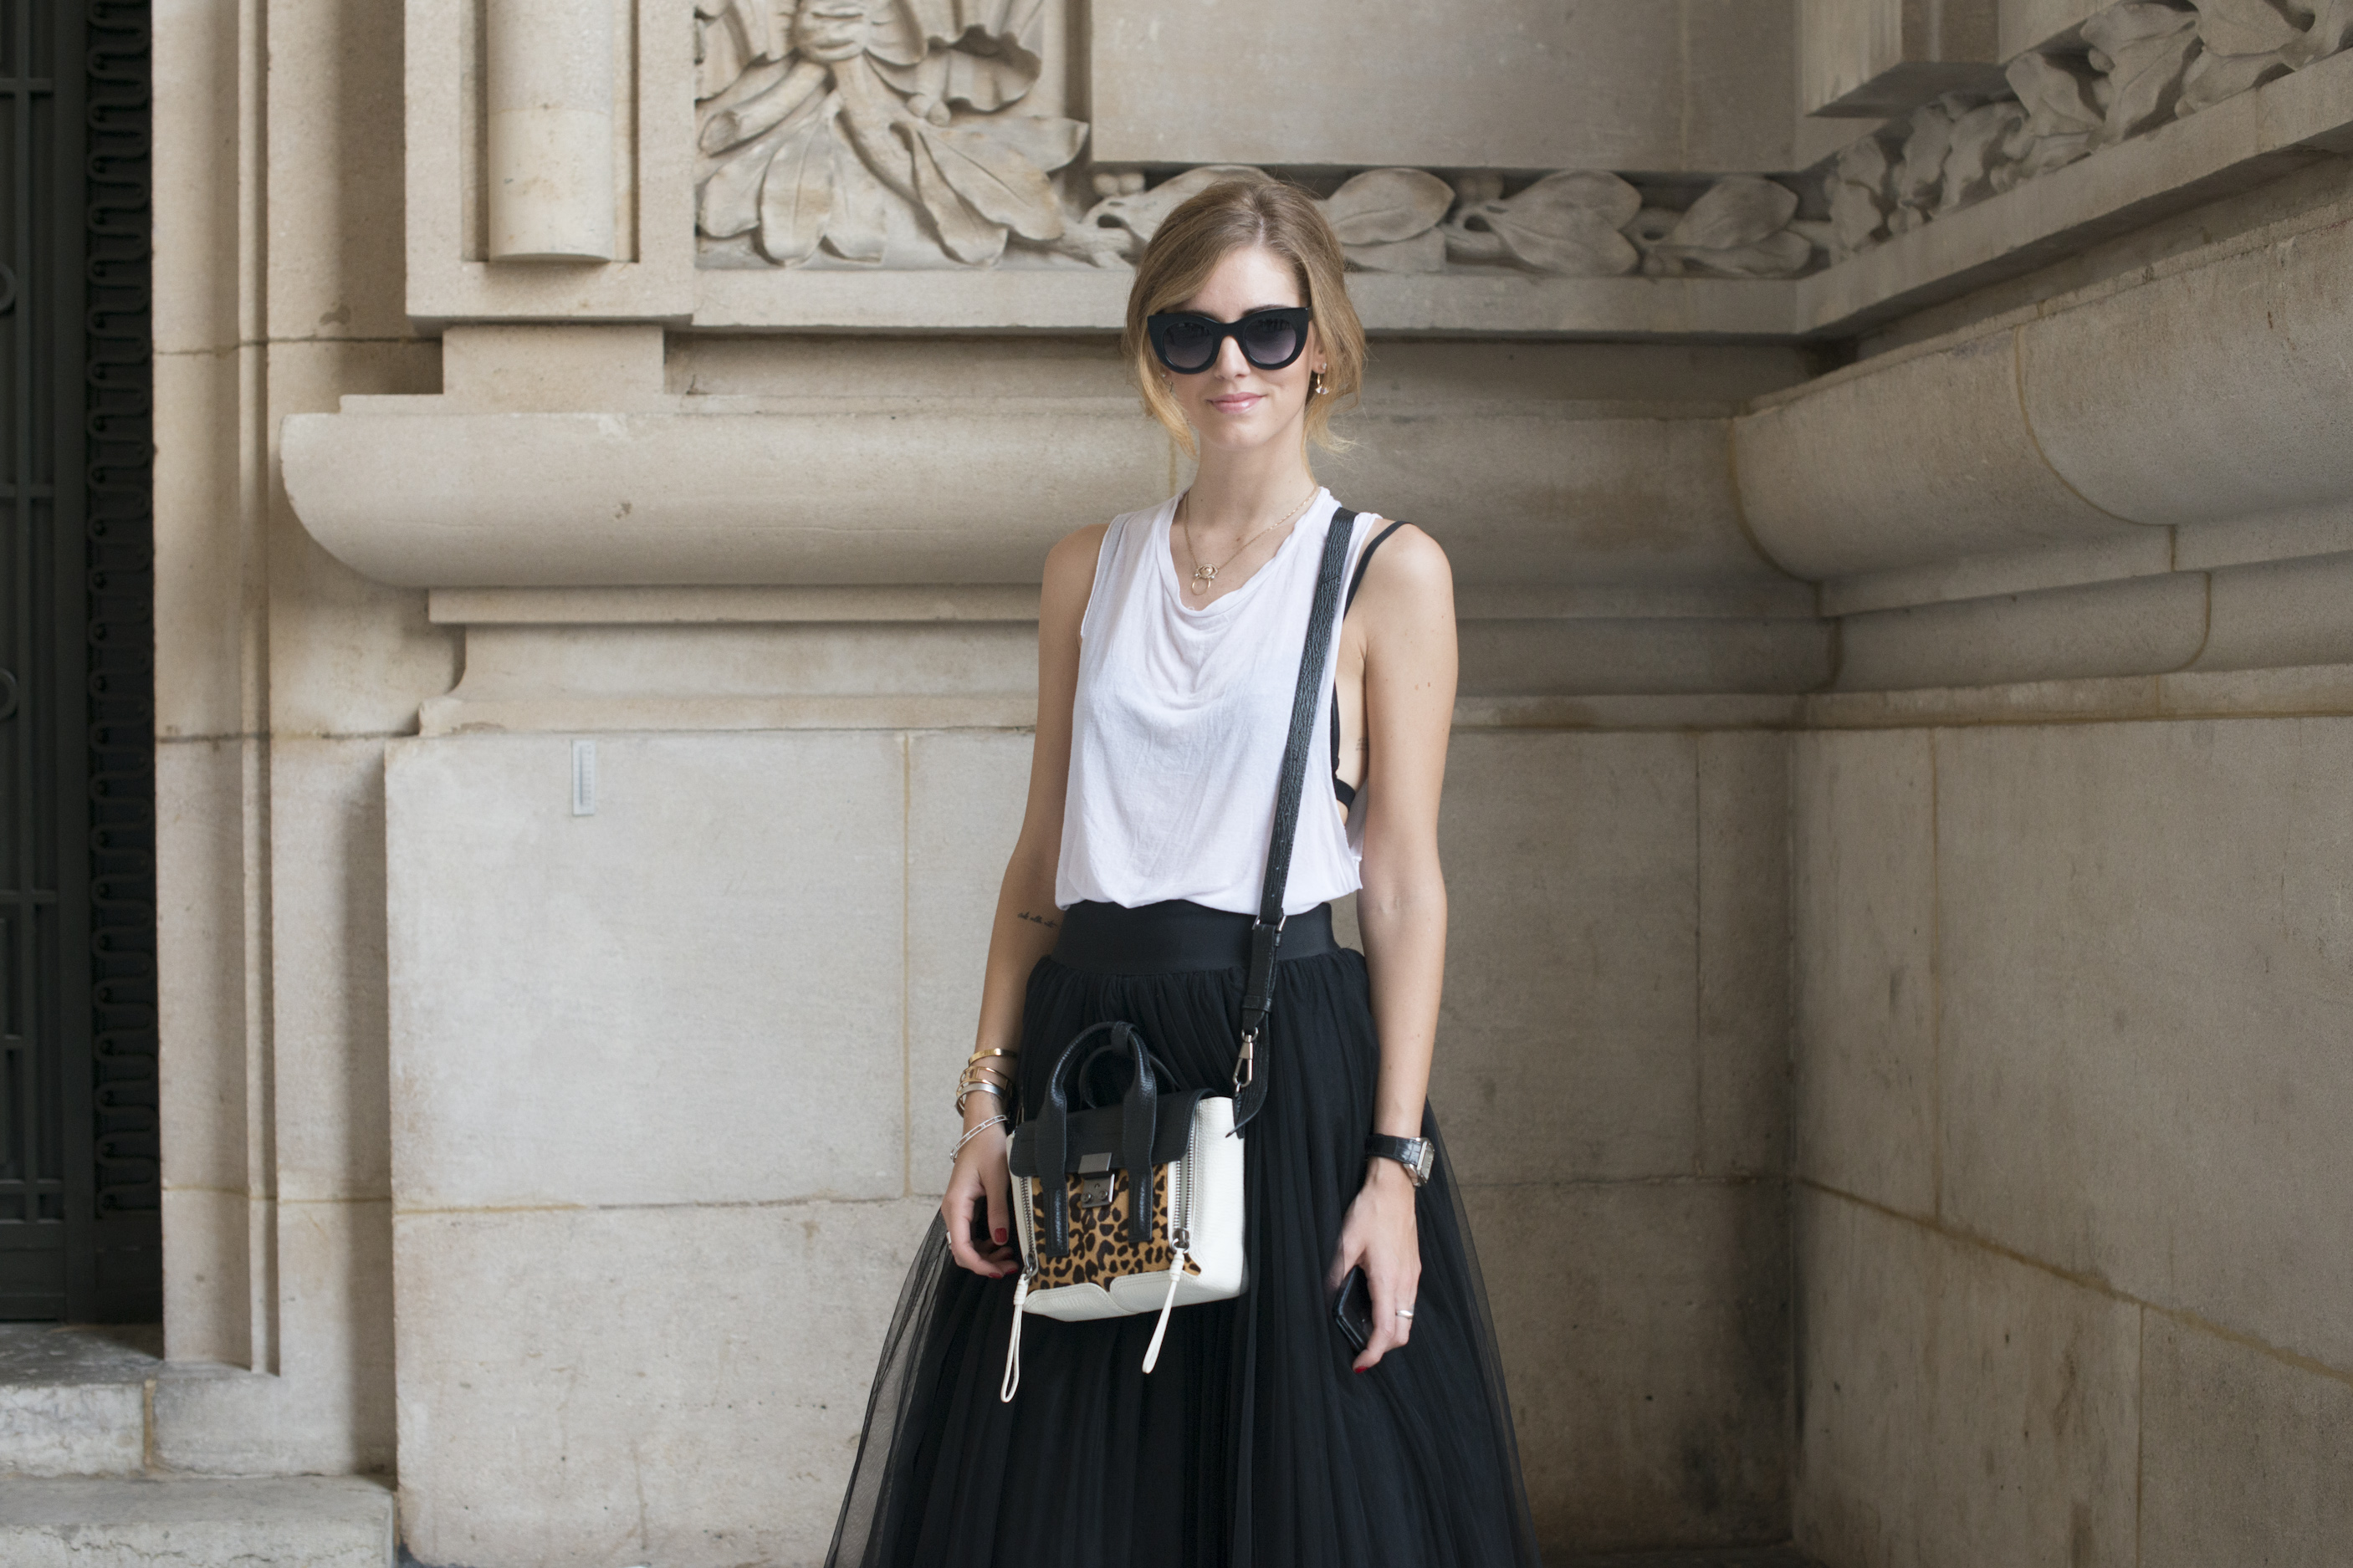 A 3.1 Phillip Lim bag spotted outside an international fashion week.